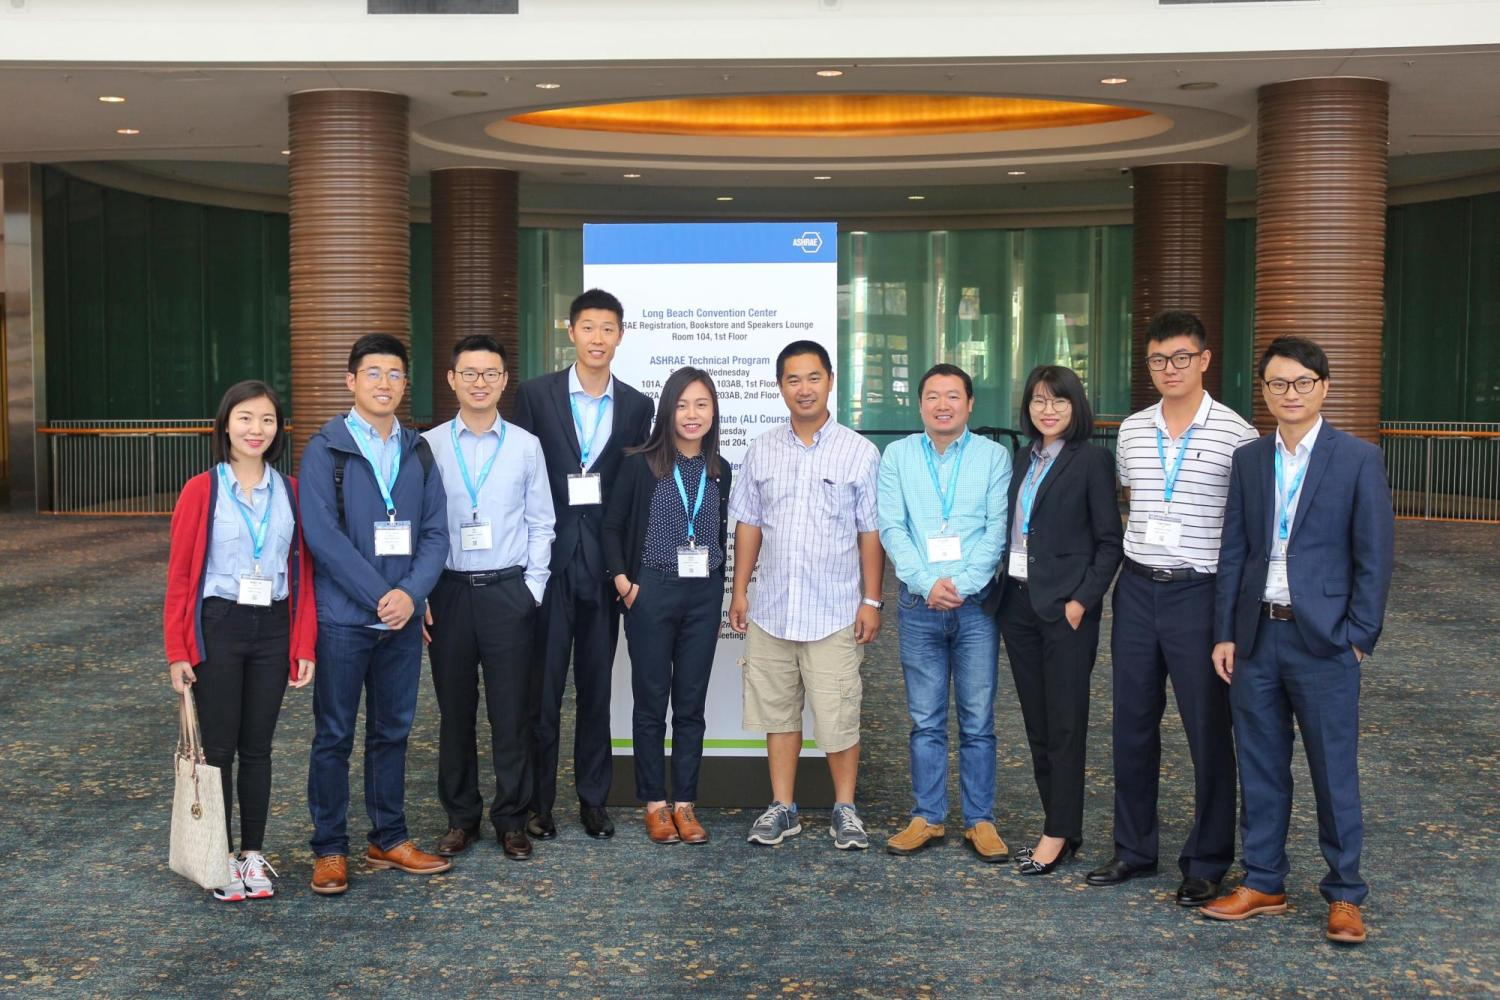 SBS team attended IBPSA-USA and ASHRAE annual conferences in Long Beach